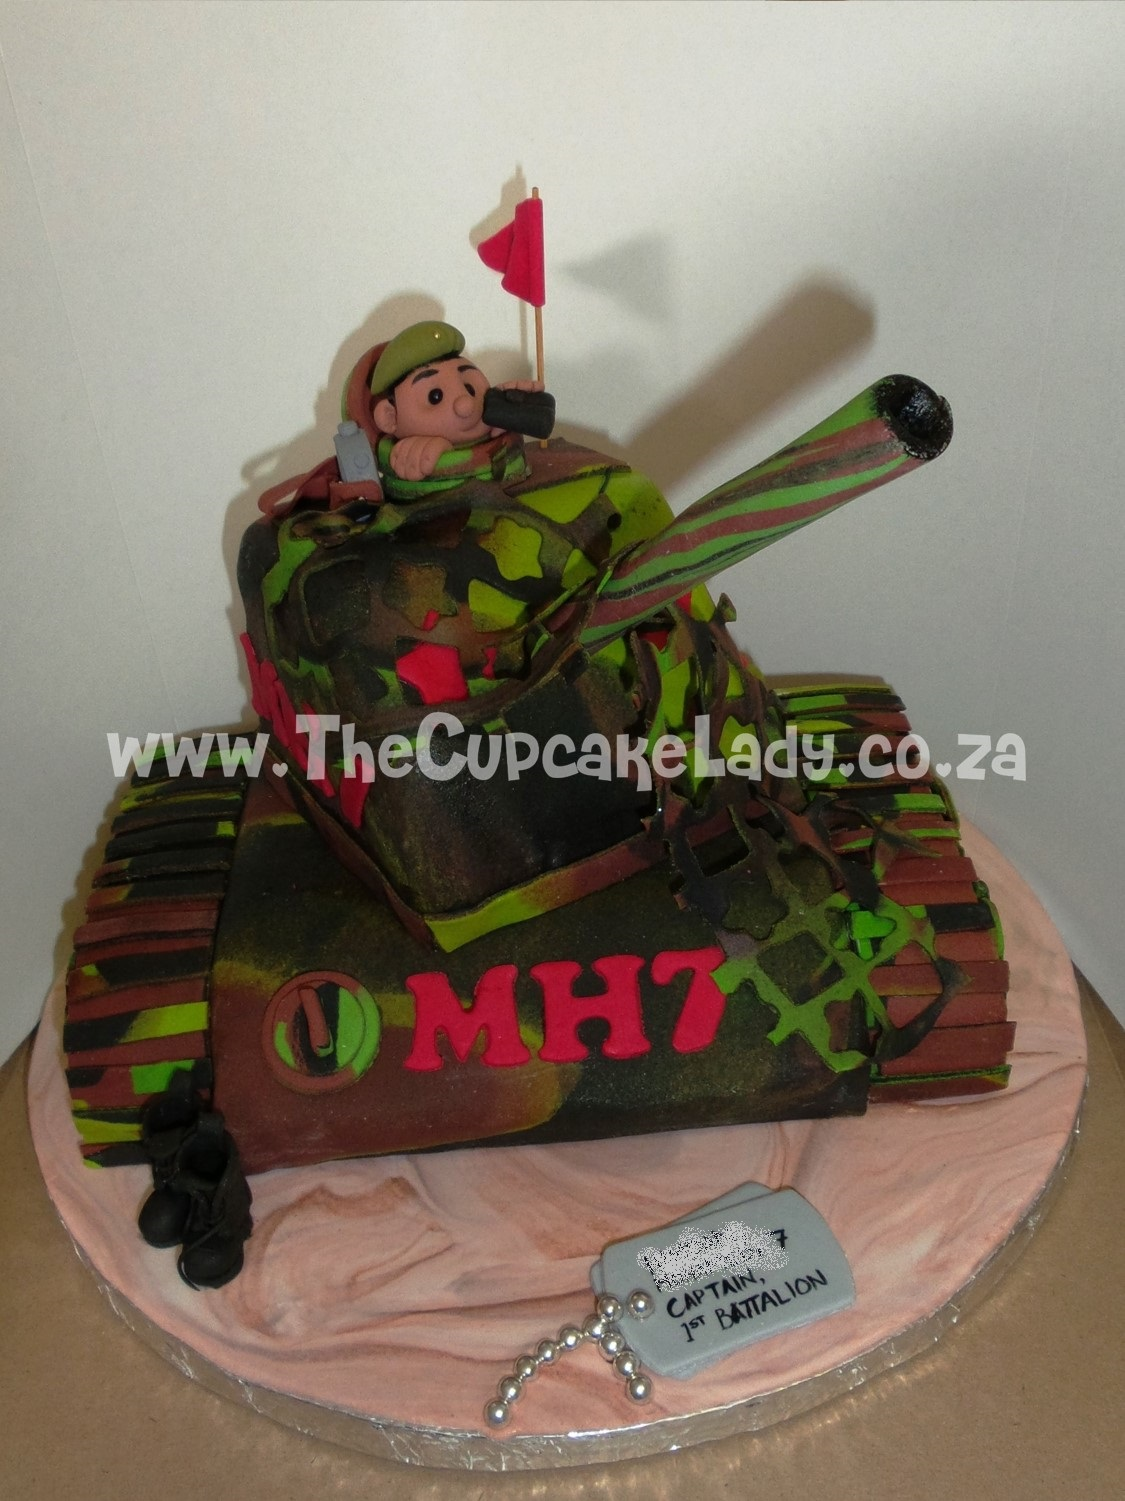 birthday tank-shaped cake, the driver of the tank is wearing a beret and holding a pair of binoculars, custom sugar art